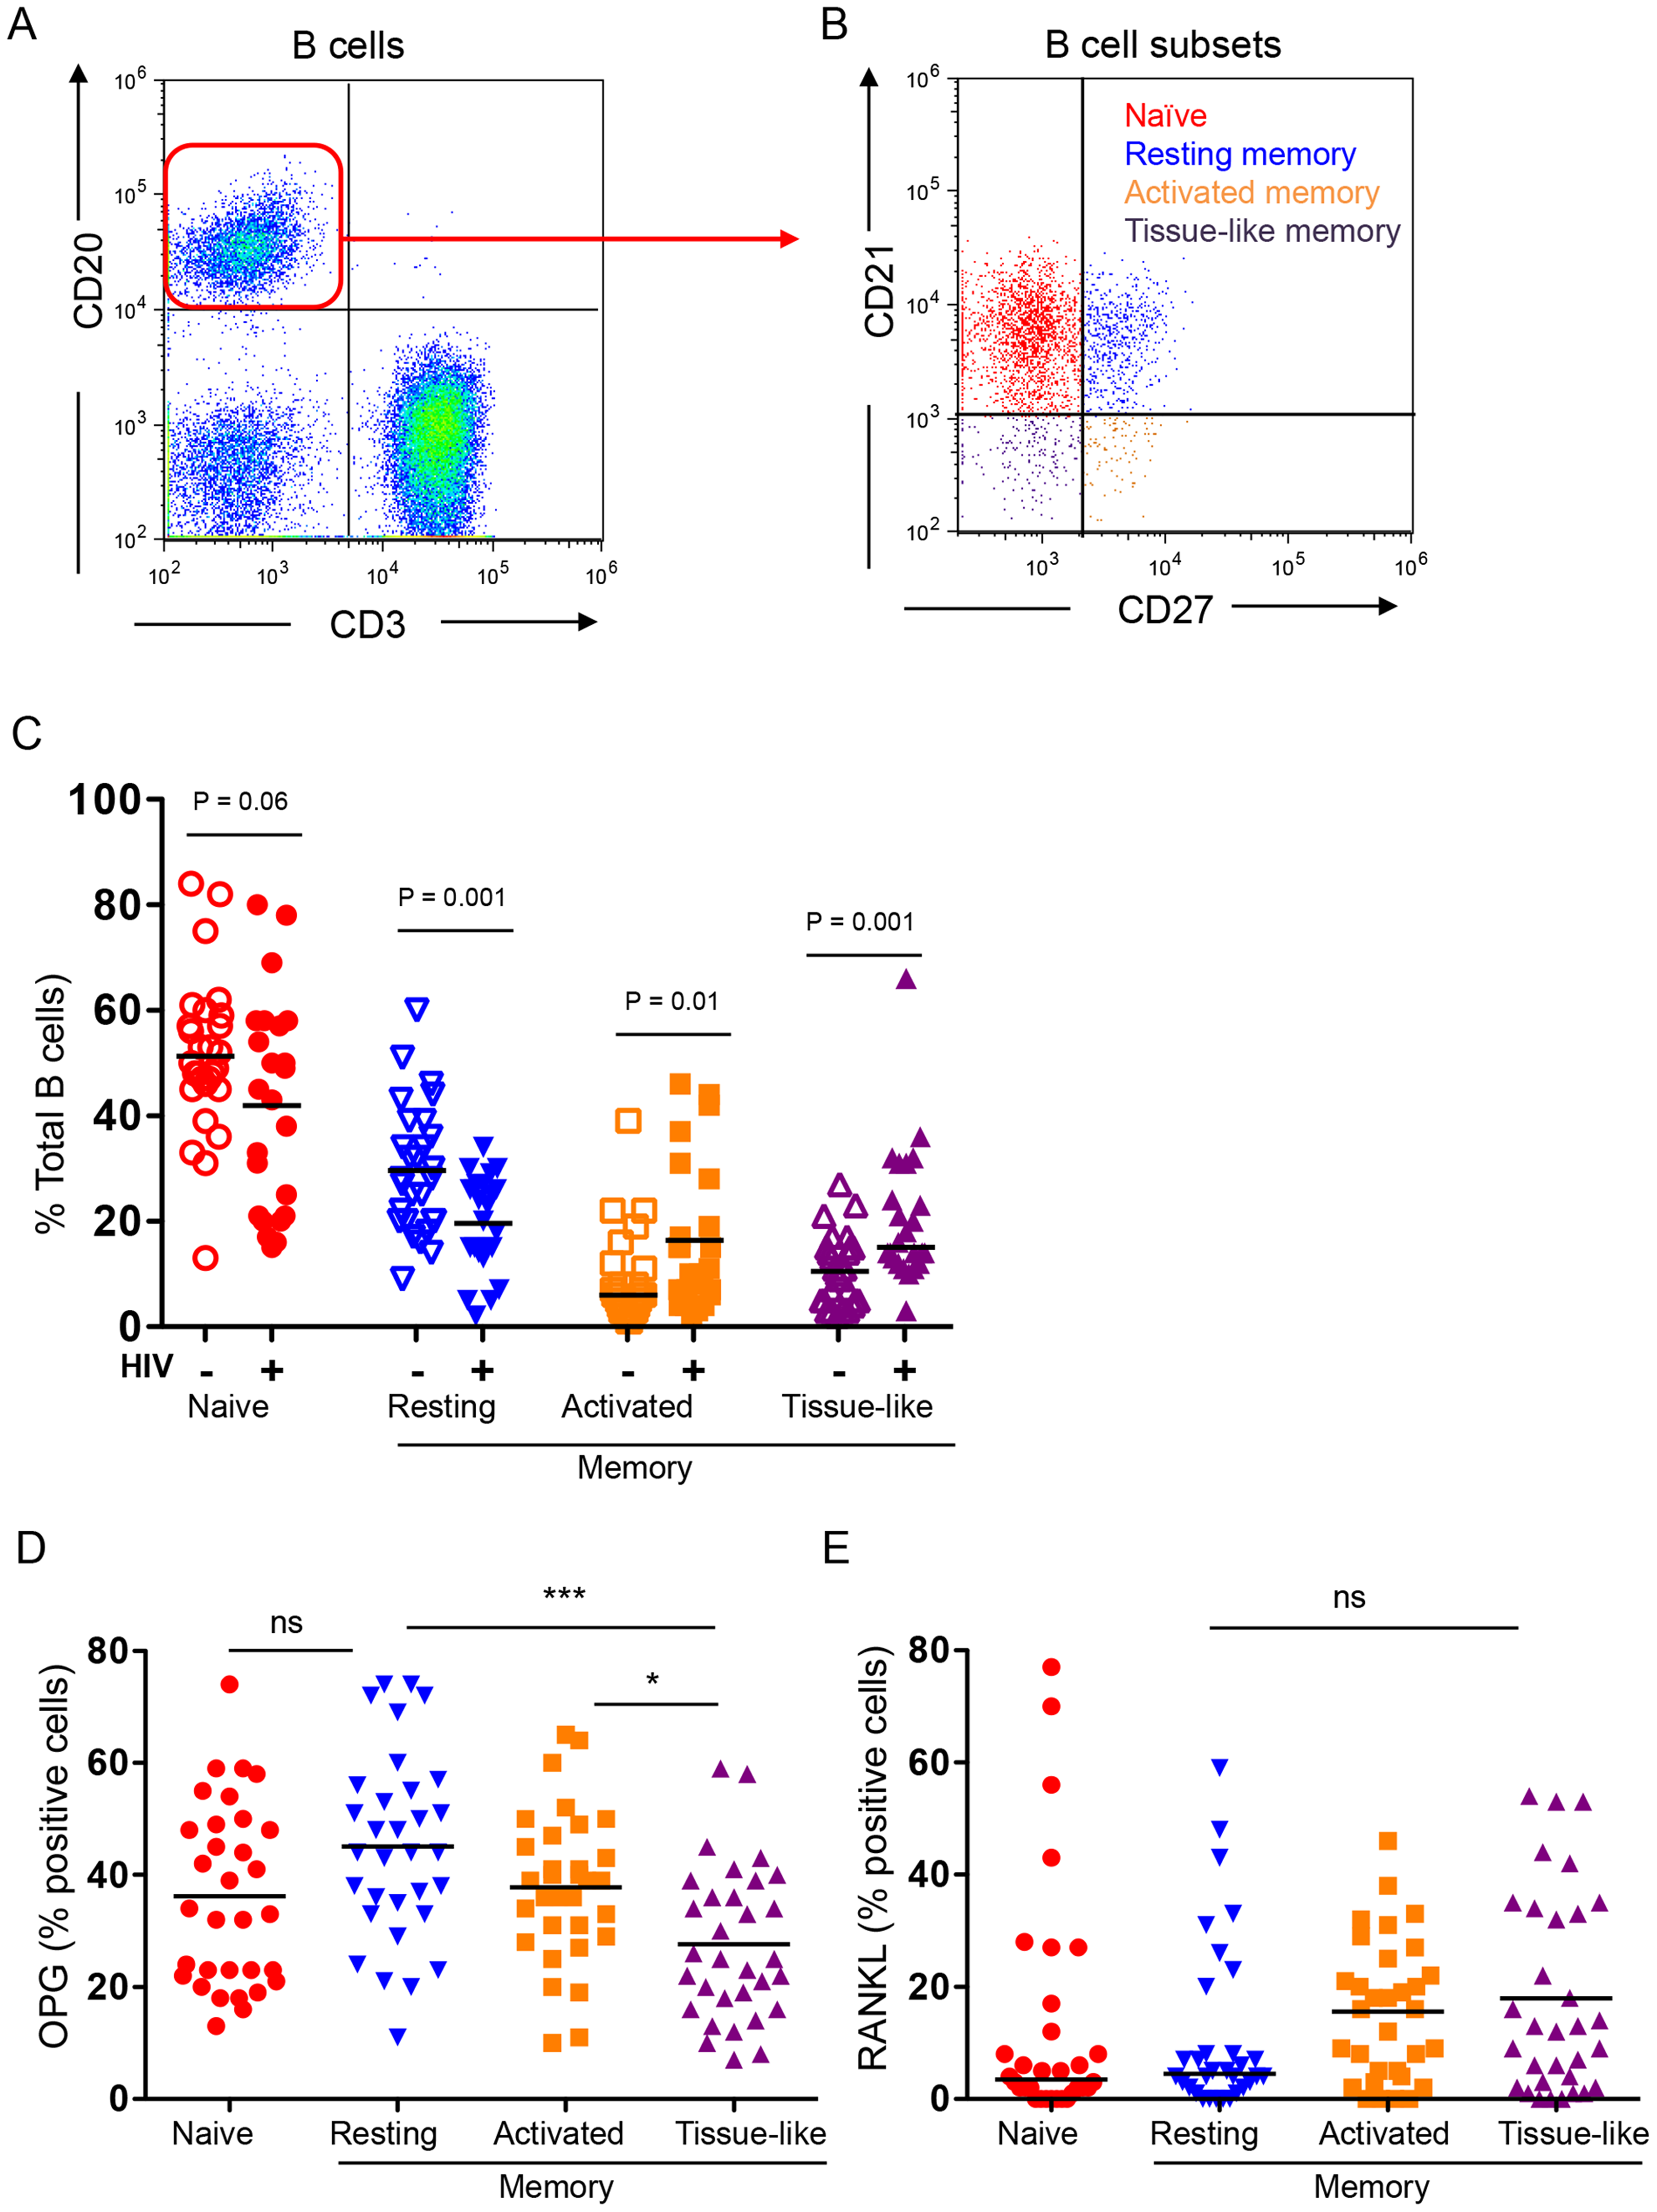 B cell subset RANKL and OPG expression in HIV-negative and HIV-positive individuals.